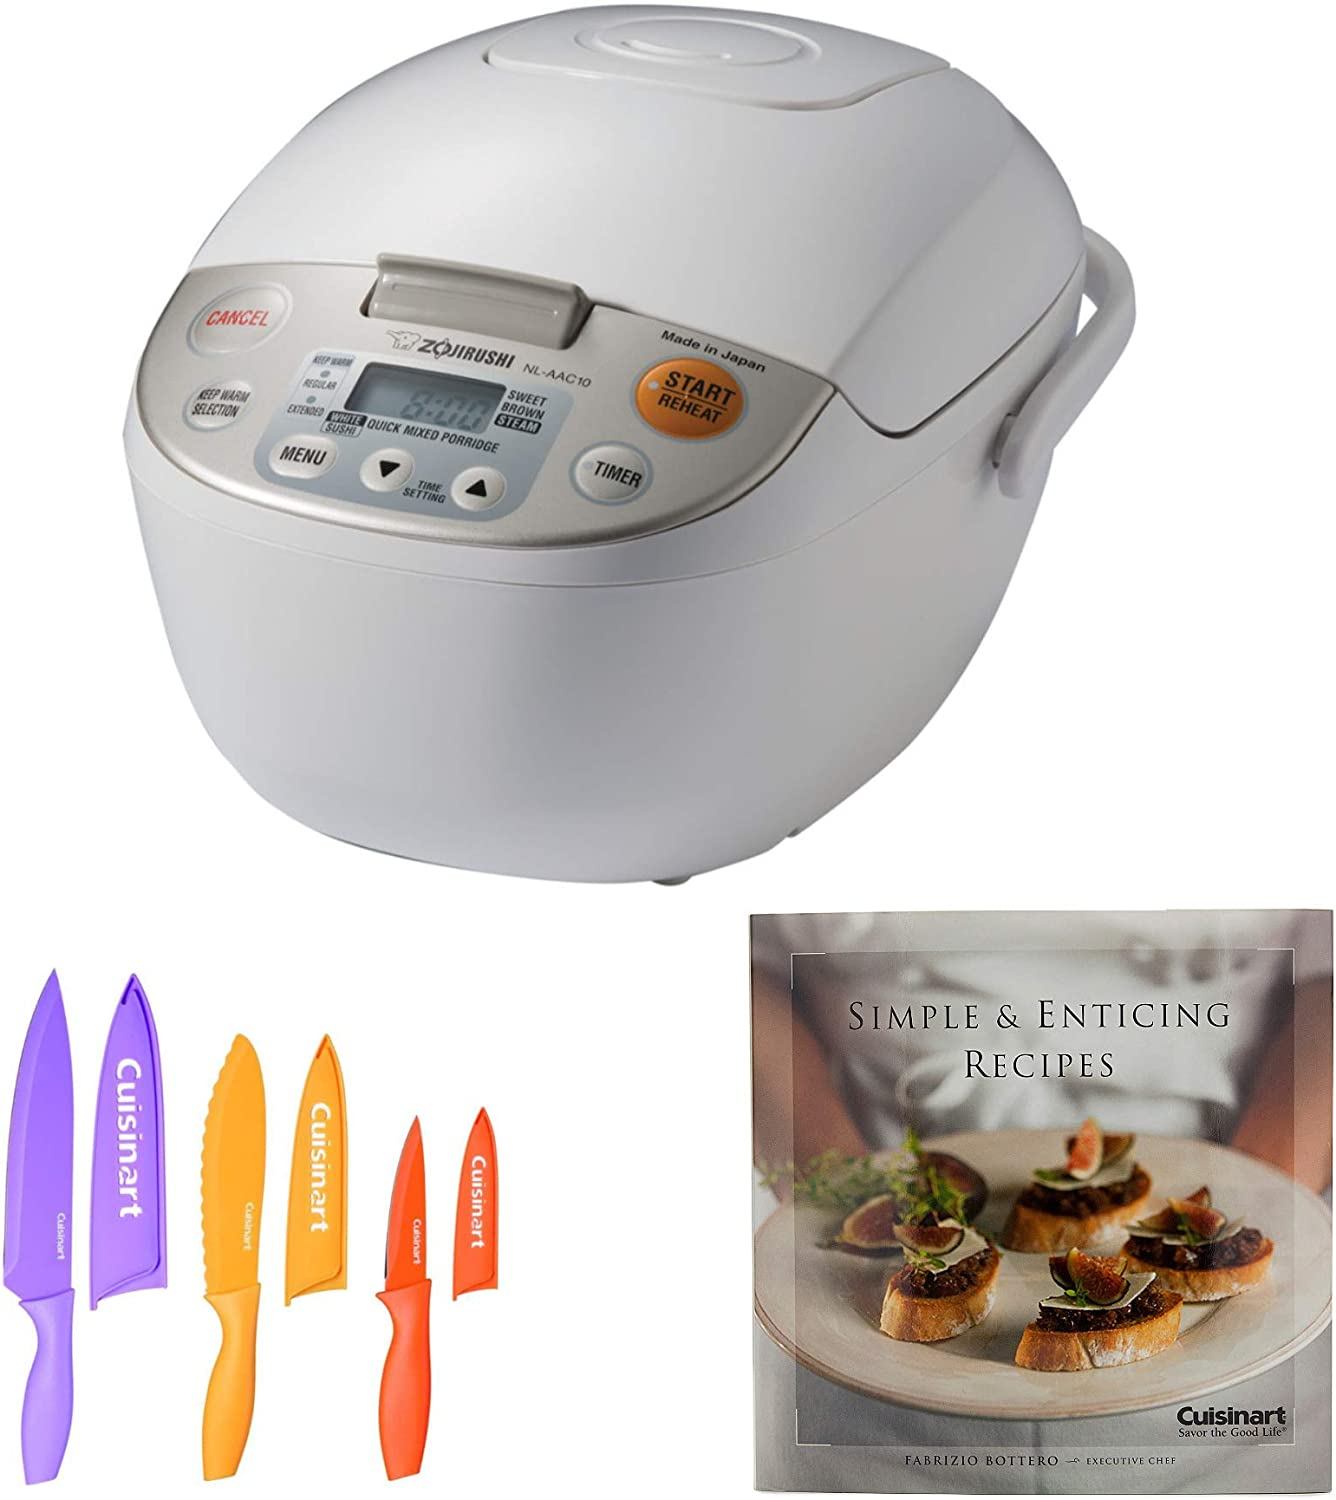 Zojirushi Micom Rice Cooker and Warmer (5.5-Cup) with 6-Piece Nonstick Chef Knife Set and Enticing Recipes Cookbook (3 Items)